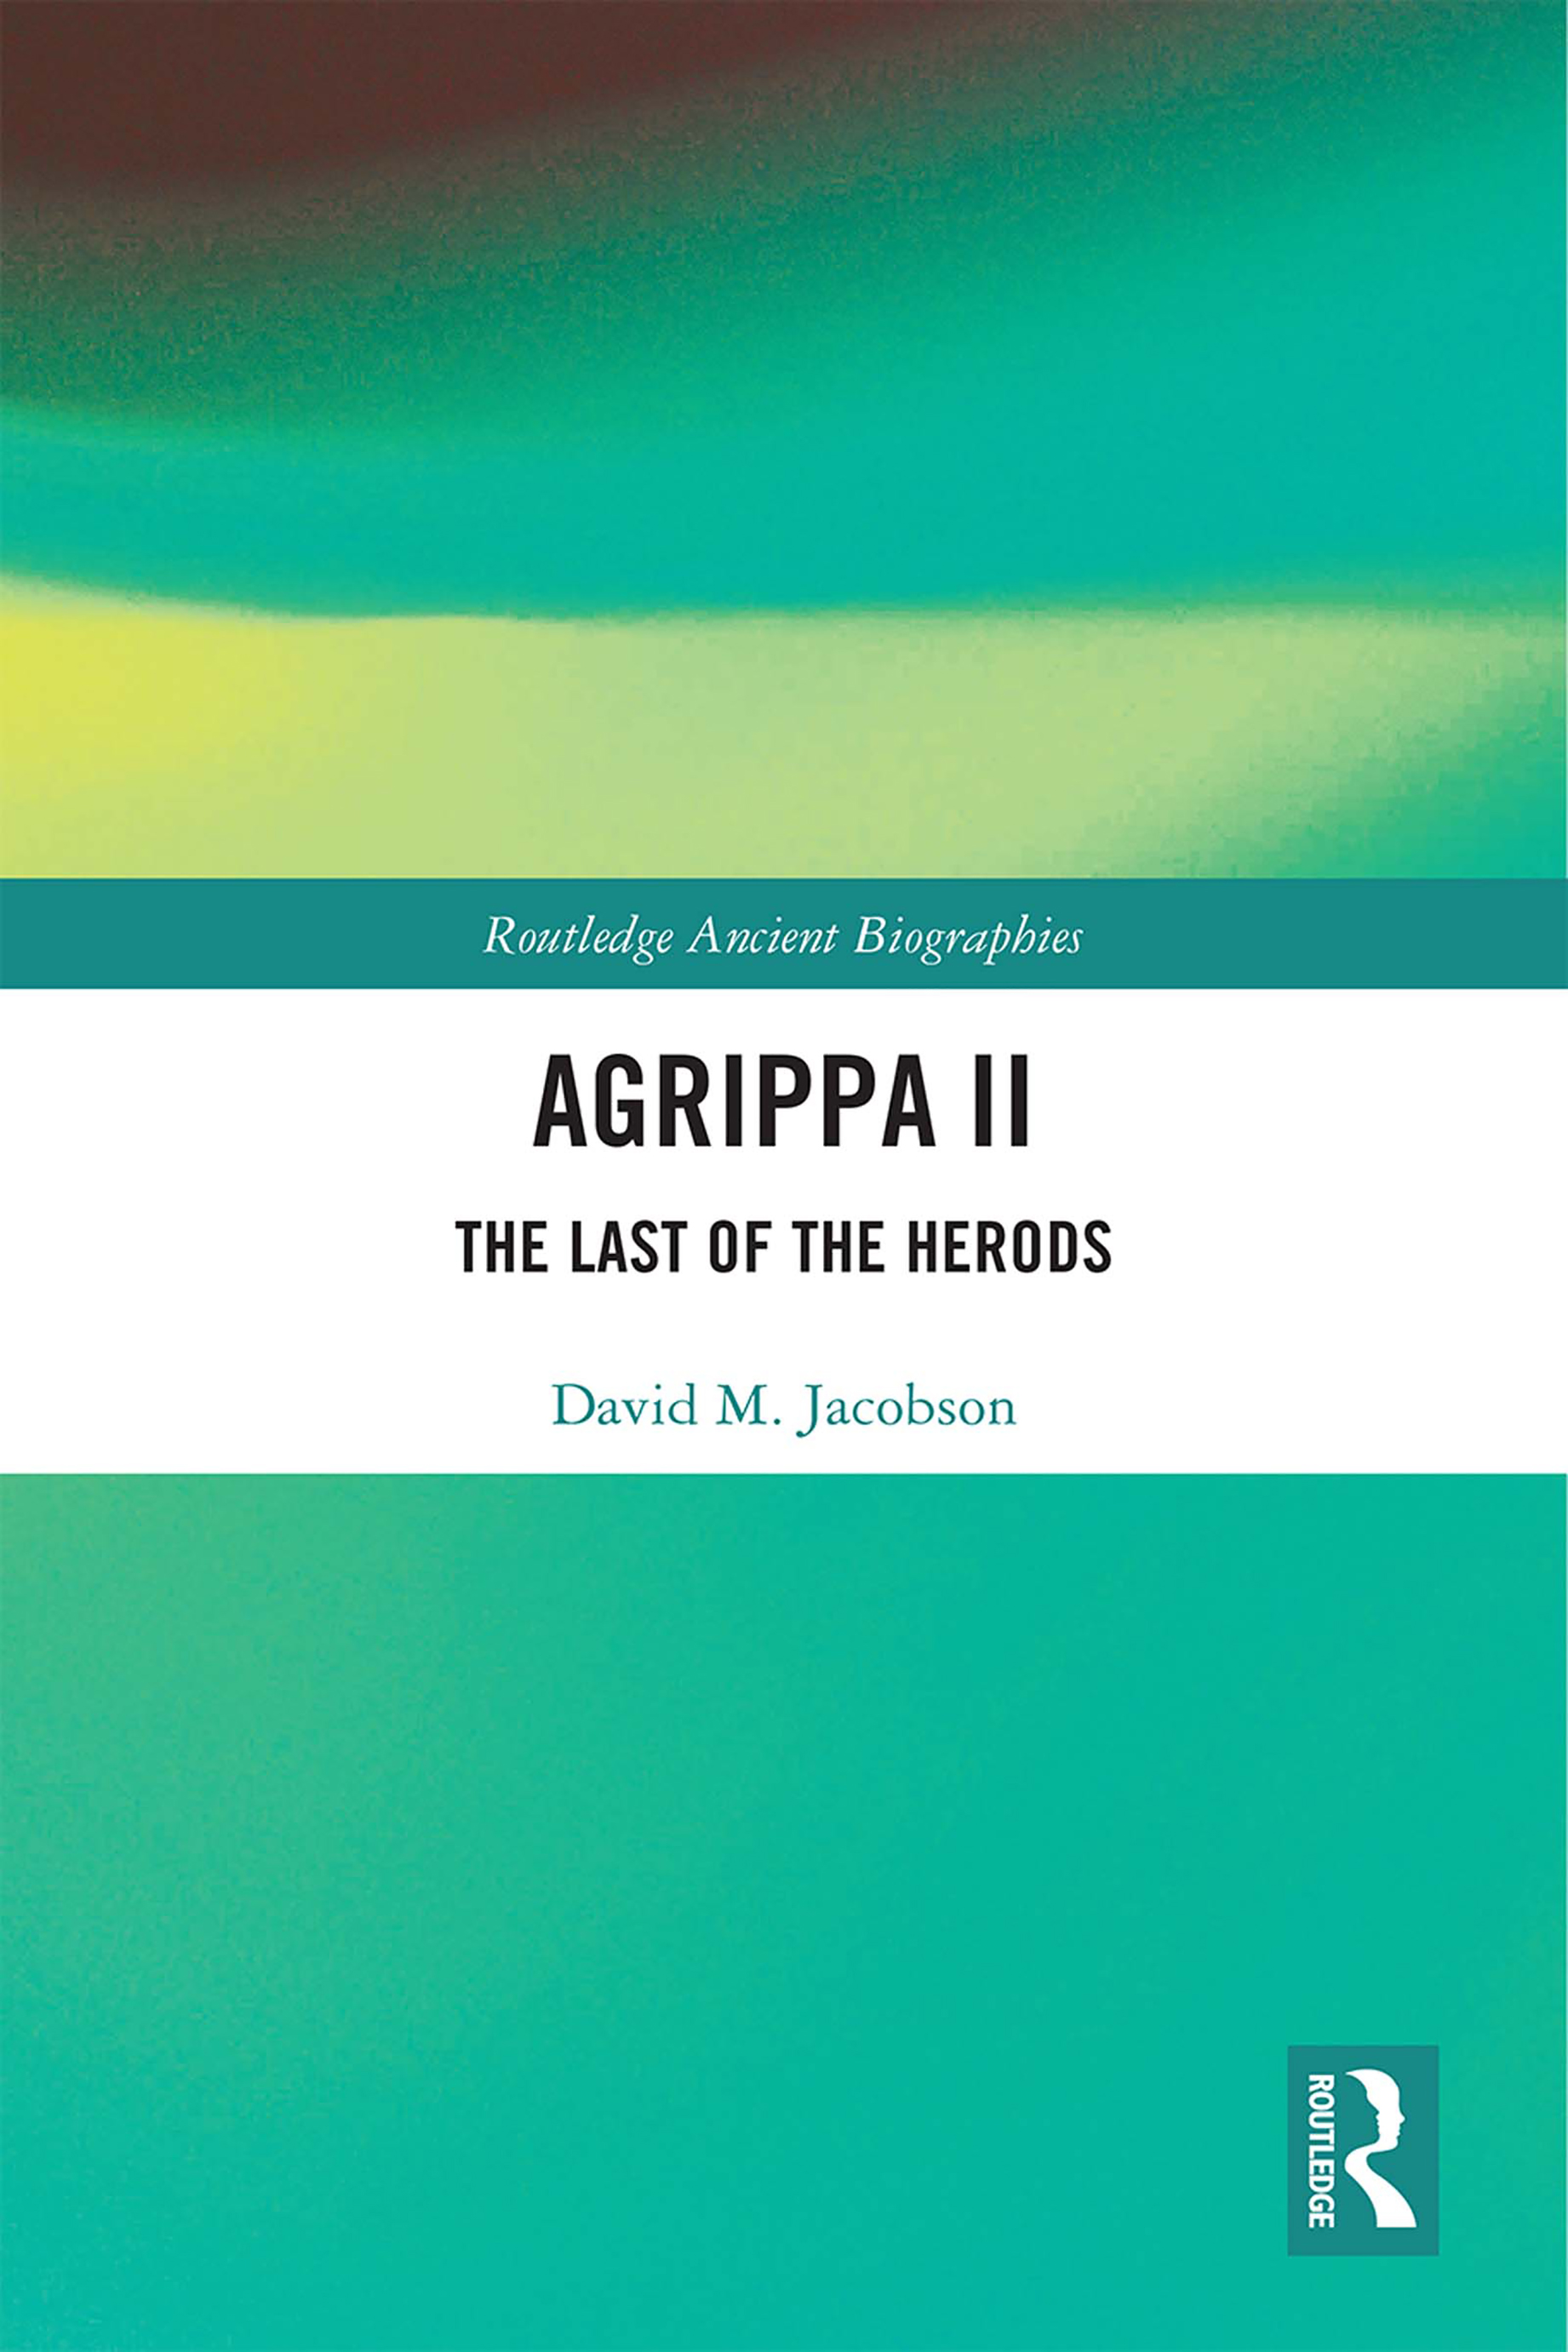 Agrippa II: The Last of the Herods book cover